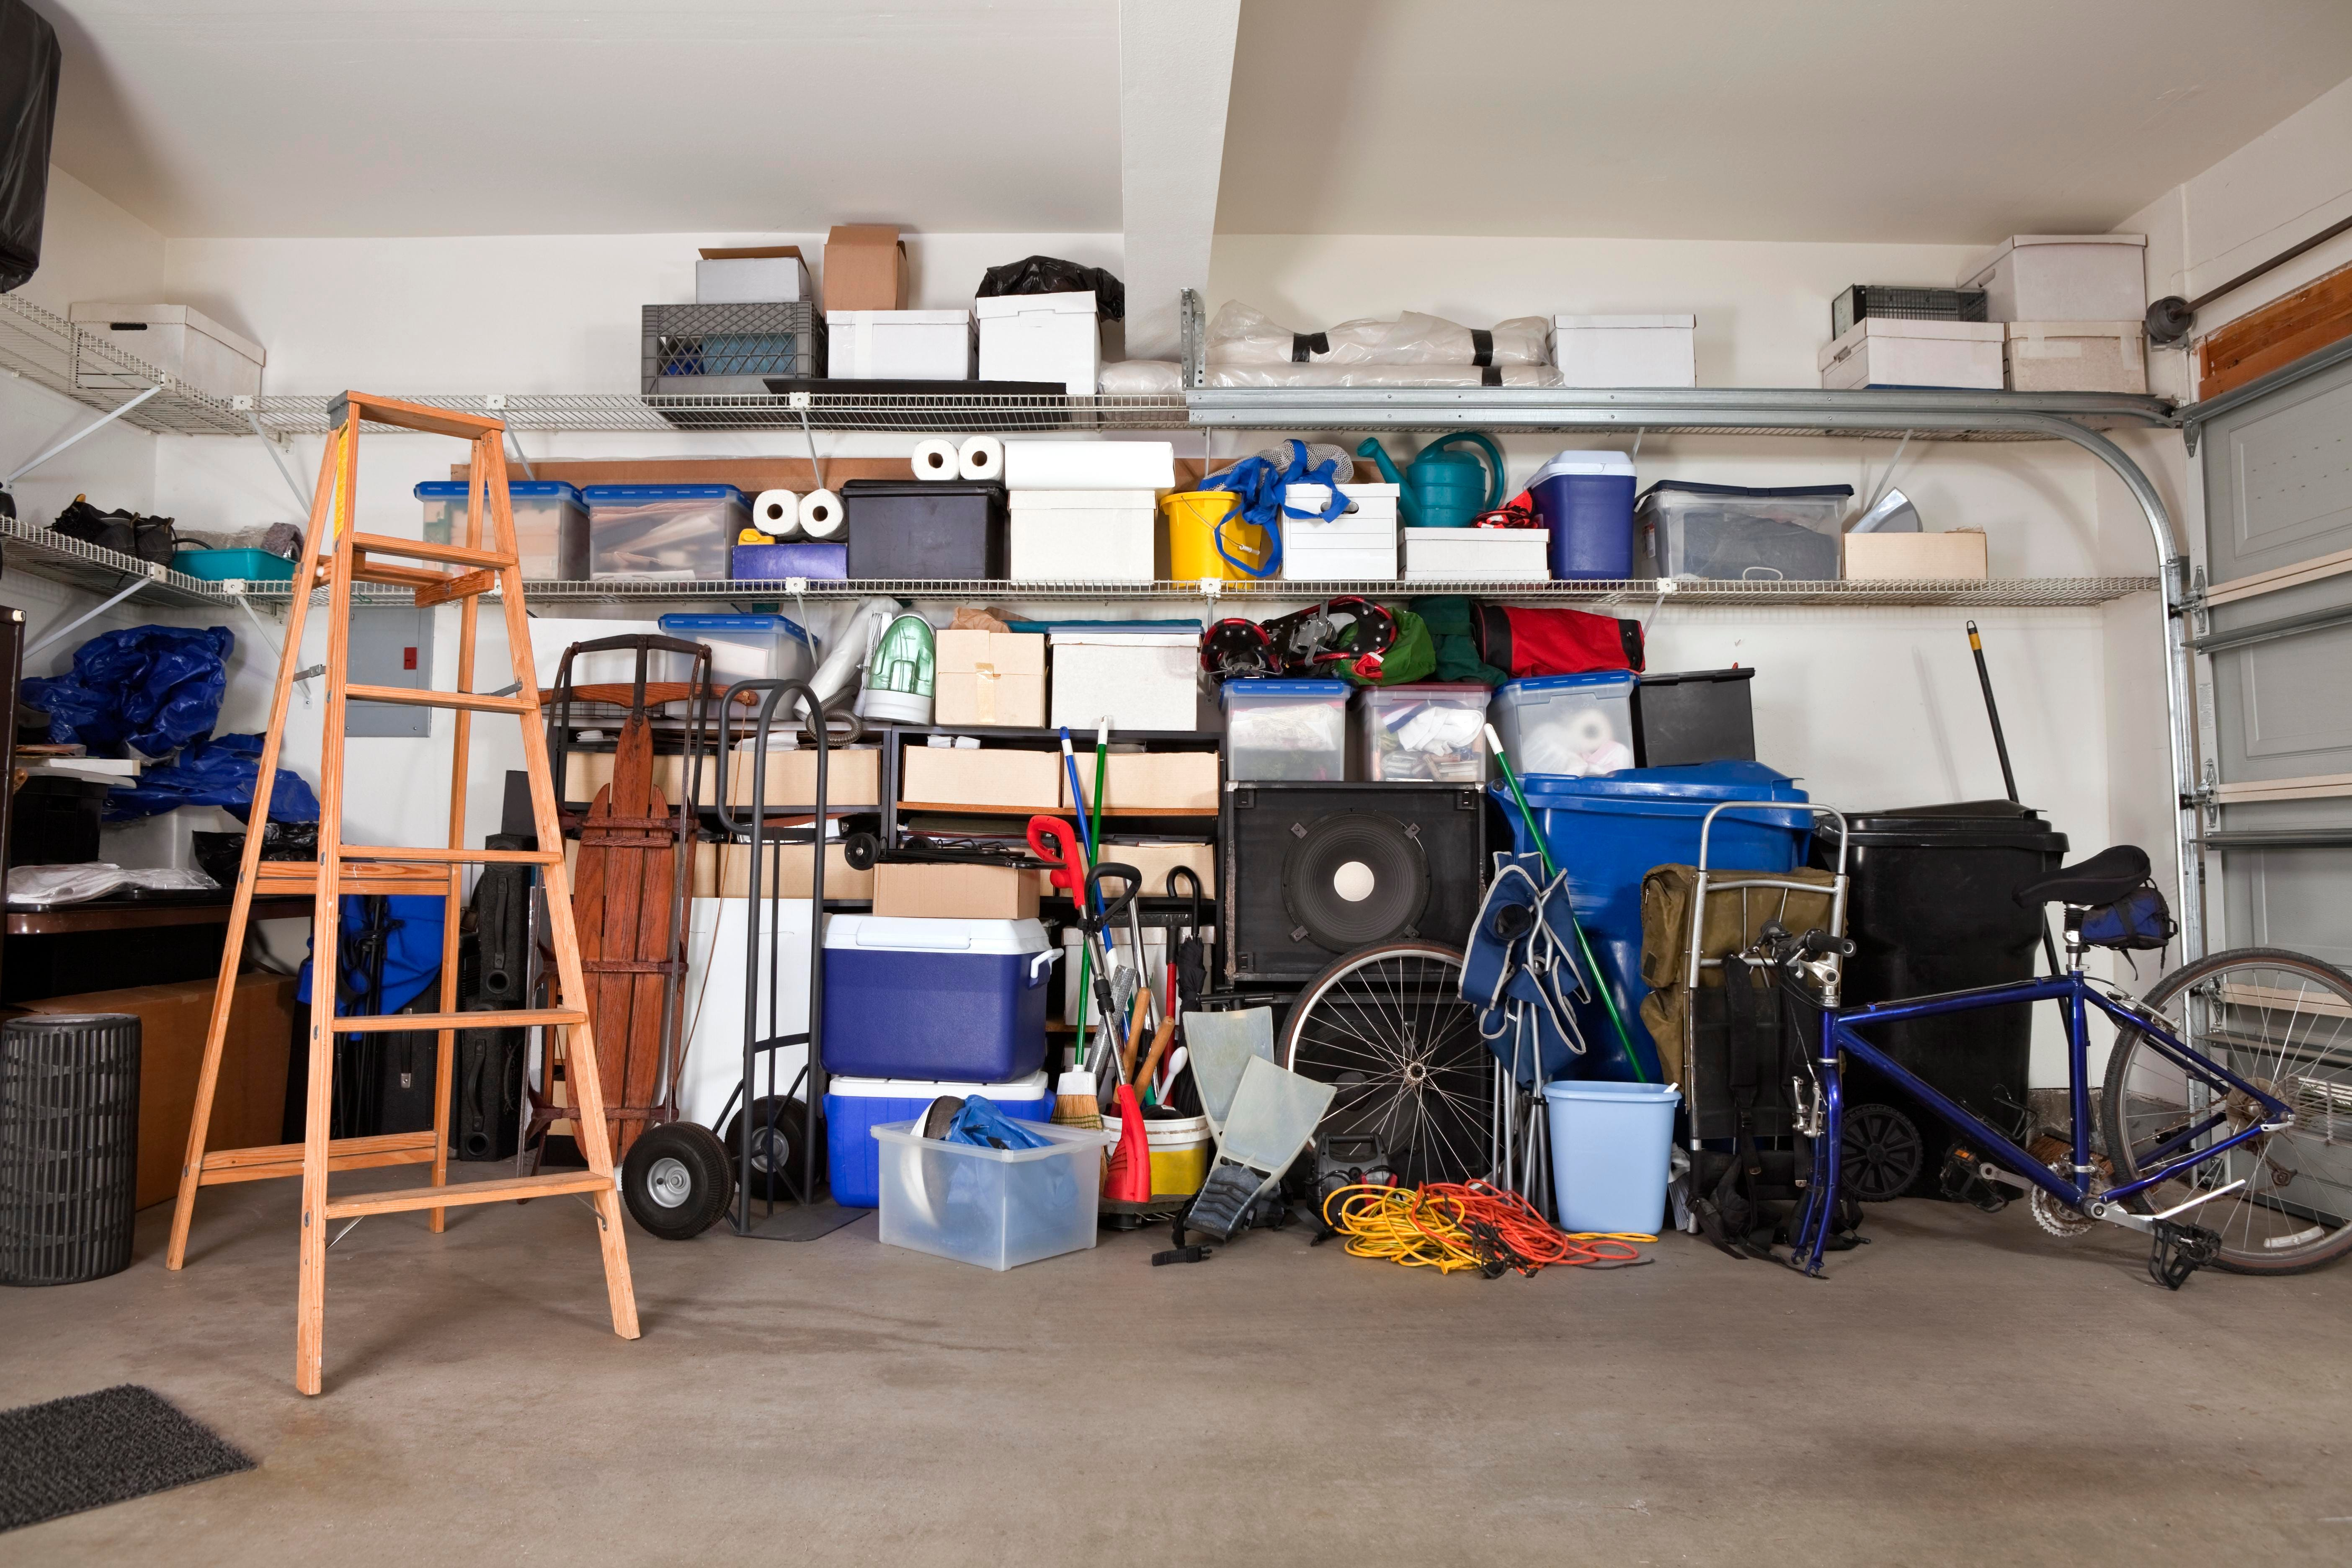 suburban garage mess with boxes, tools and toys in disarray